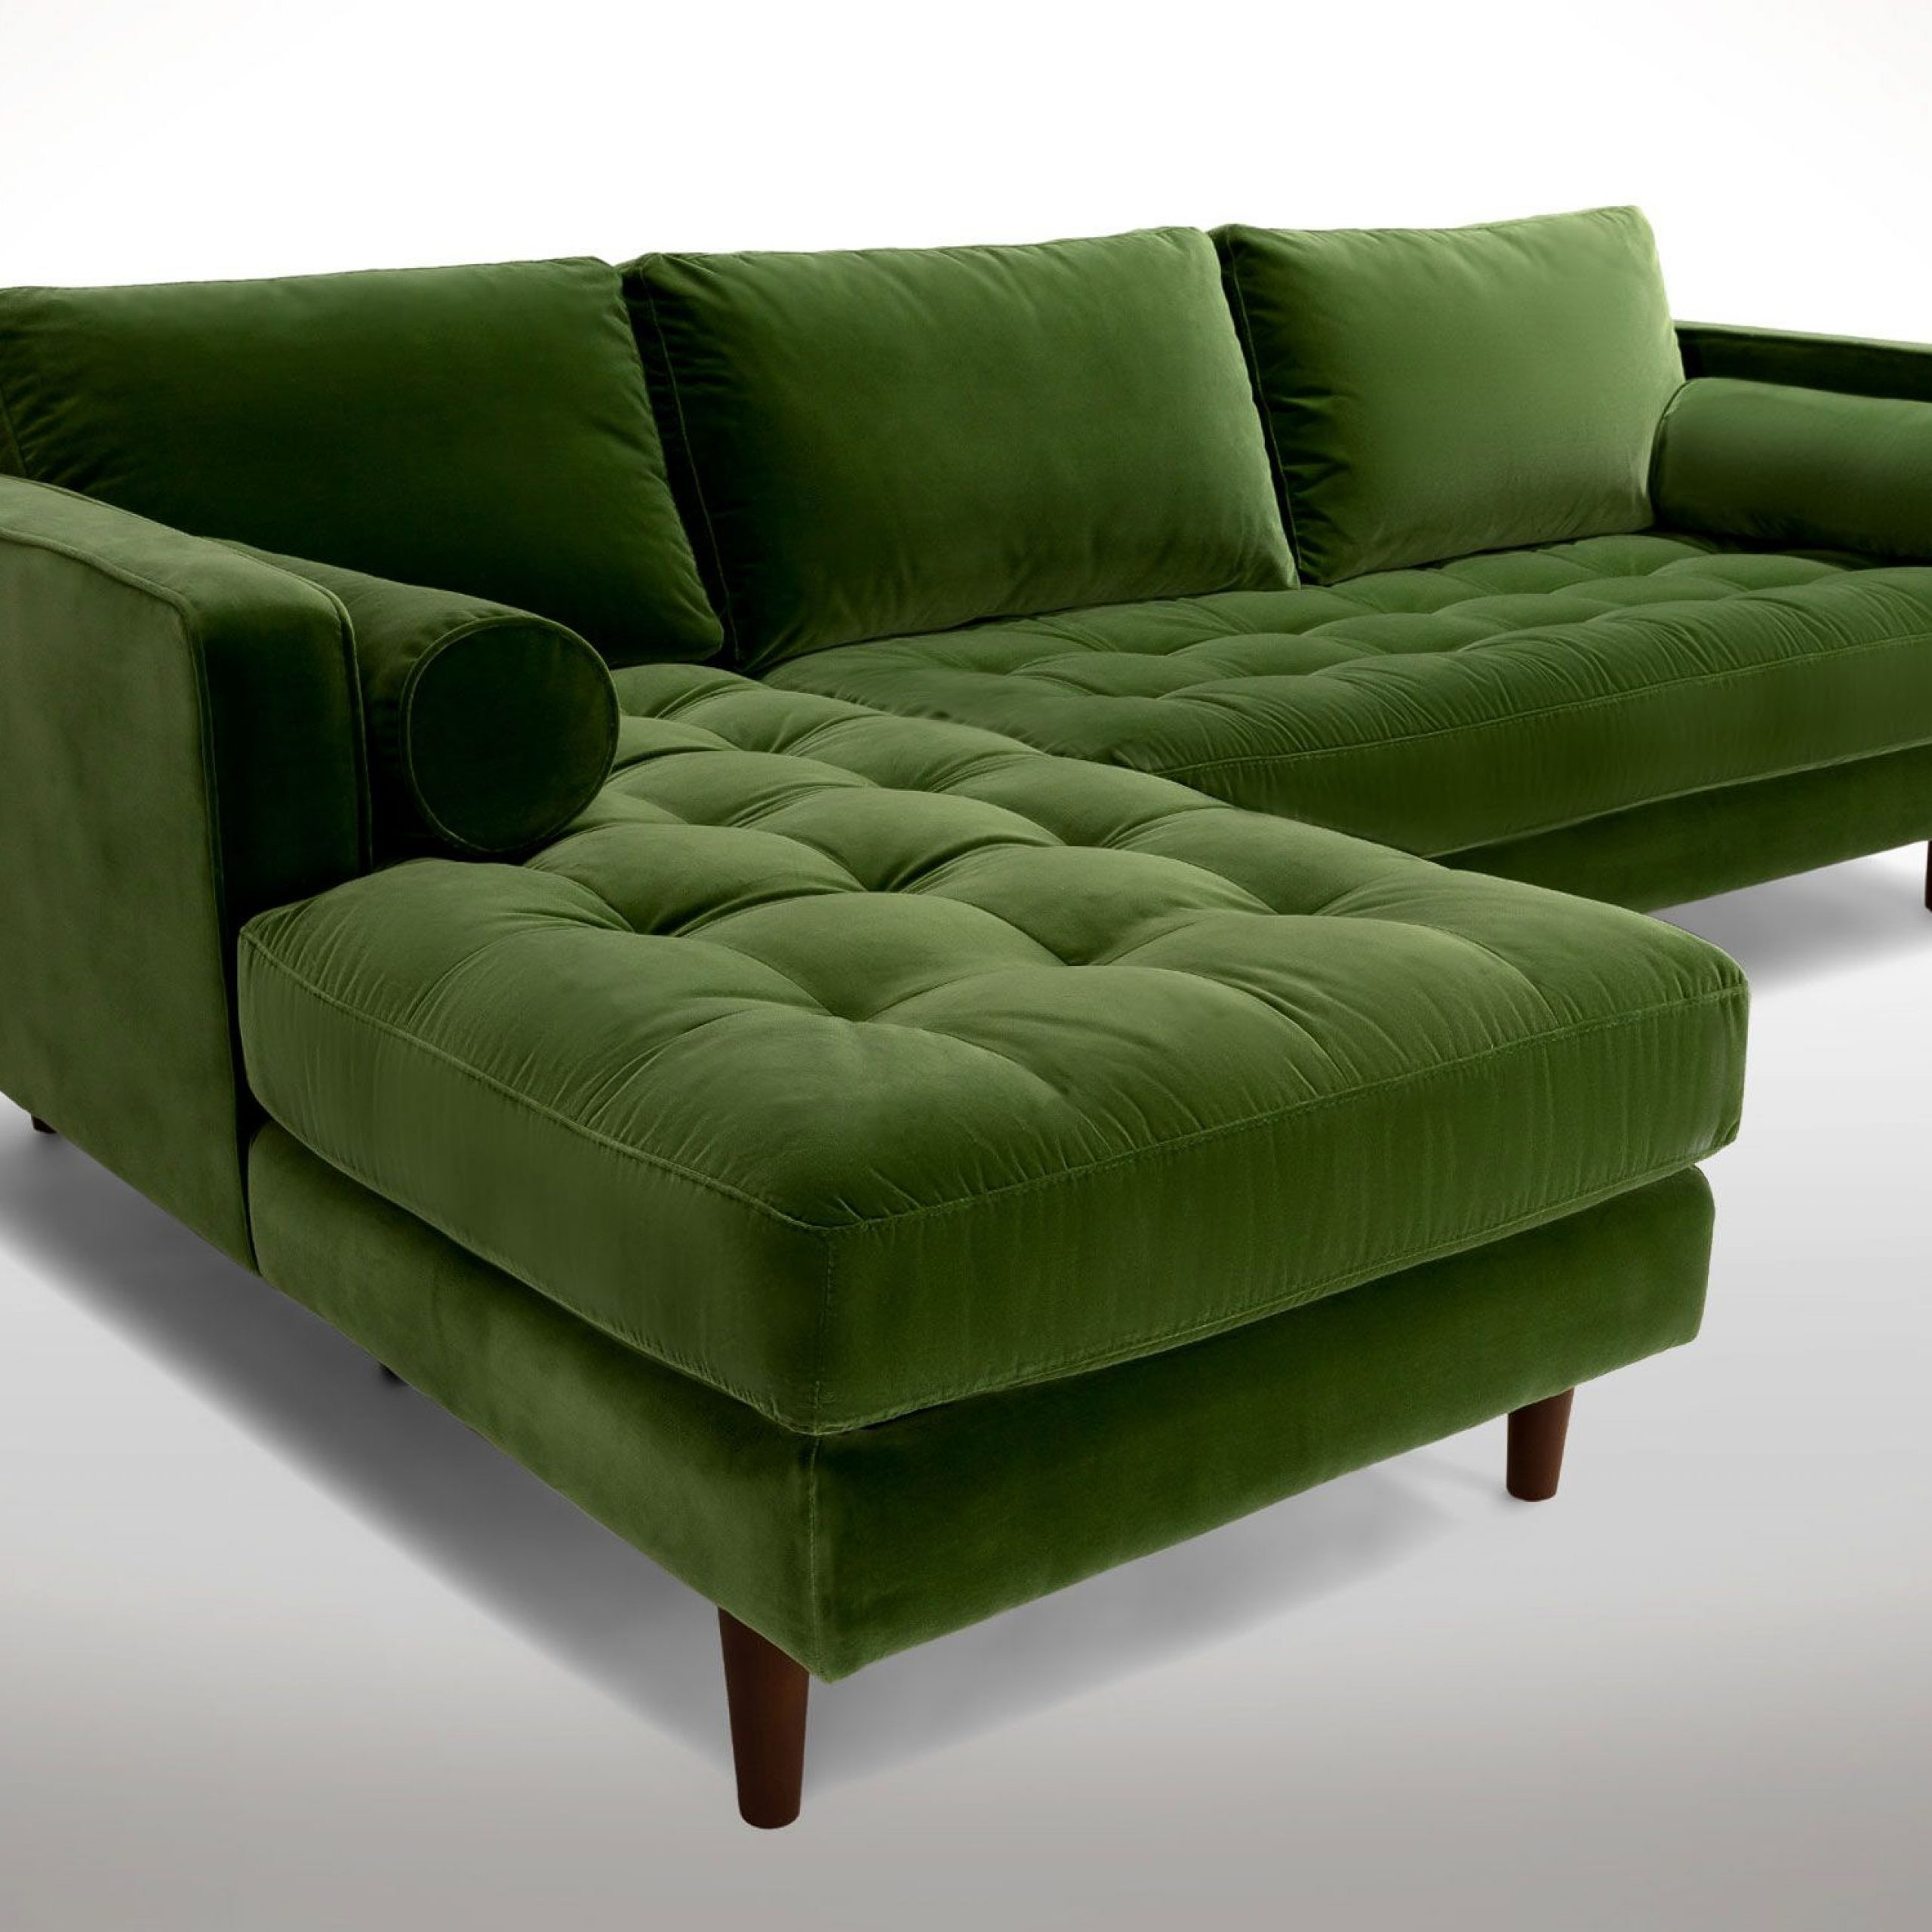 Sven Grass Green Left Sectional Sofa | Sectional Sofa Throughout Dulce Mid Century Chaise Sofas Dark Blue (View 15 of 15)